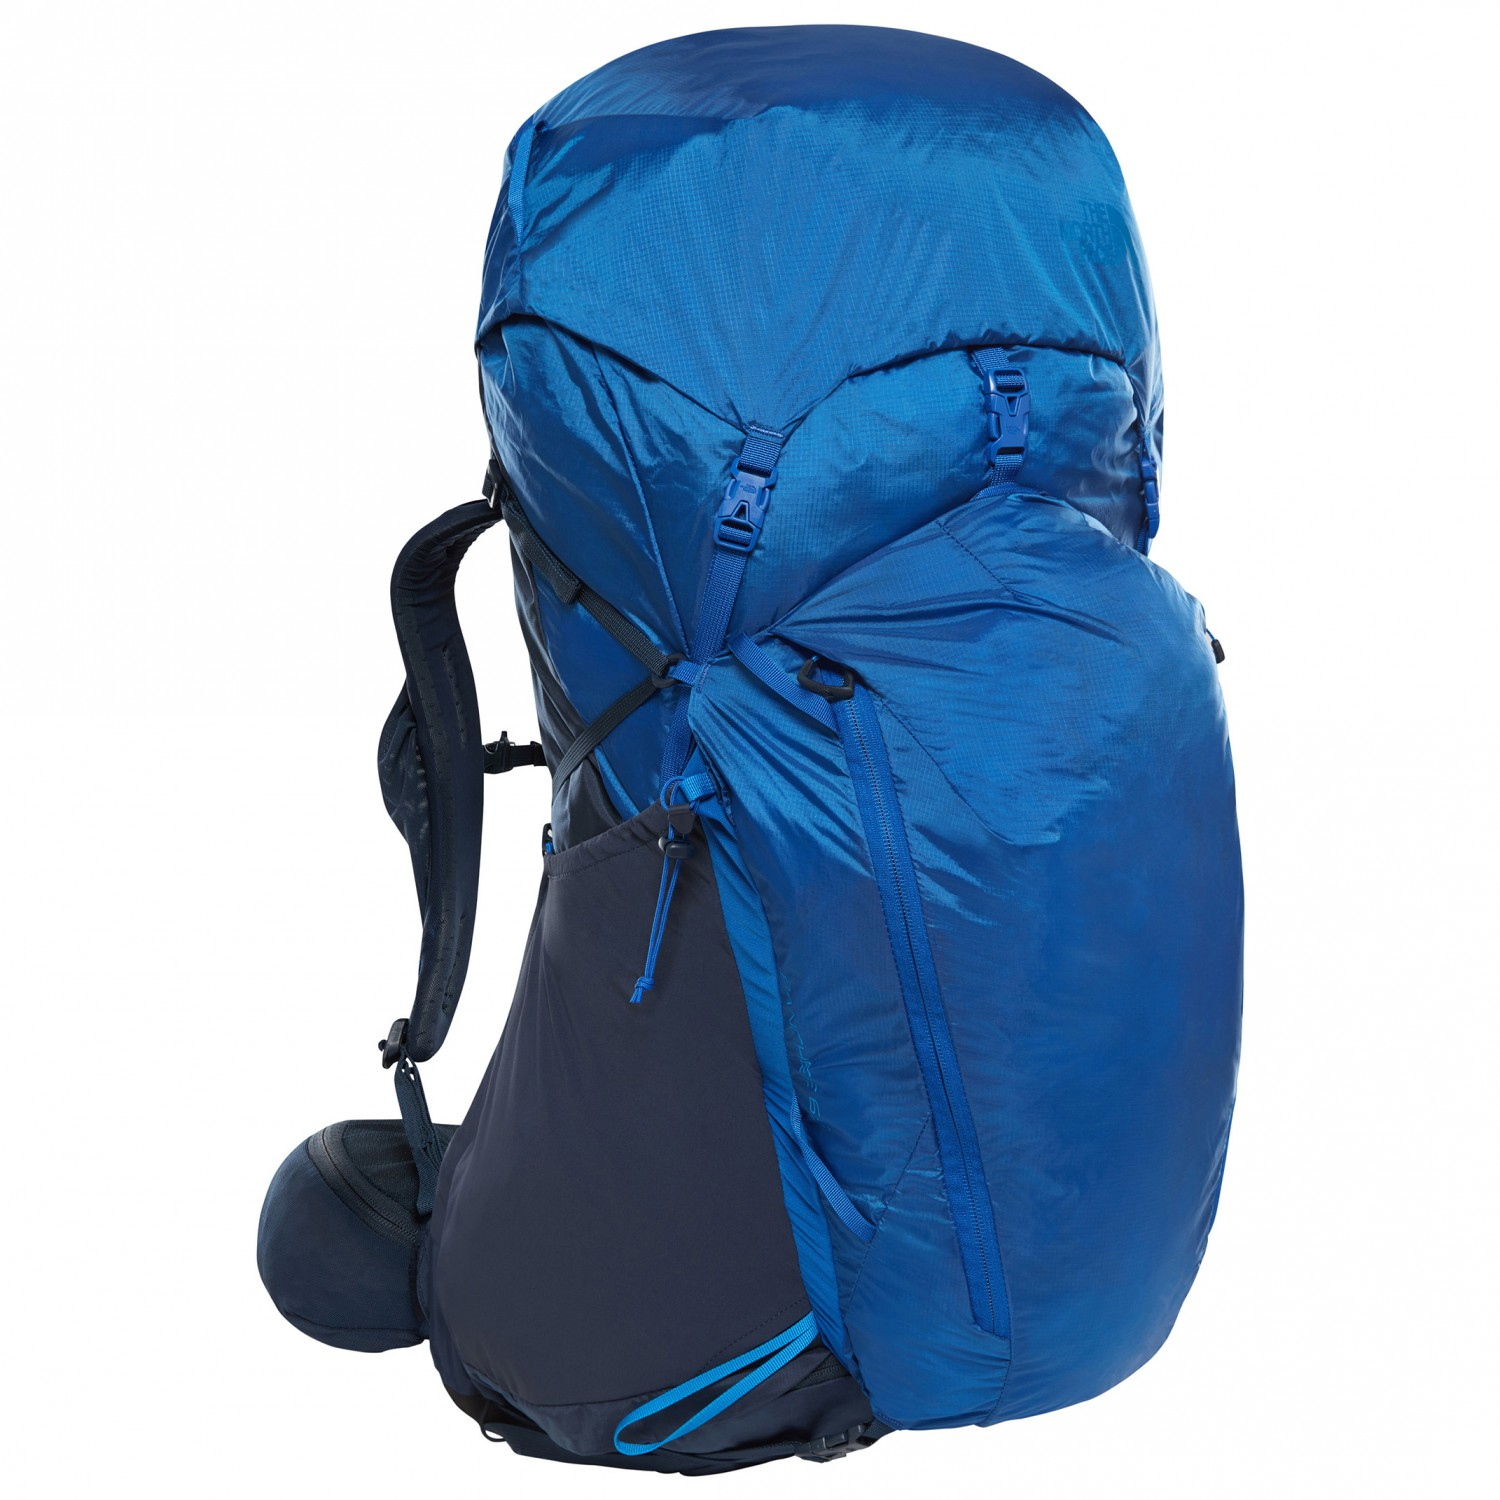 f212a7889 The North Face - Banchee 65 - Walking backpack - Urban Navy / Bright Cobalt  Blue | 65 l - L/XL